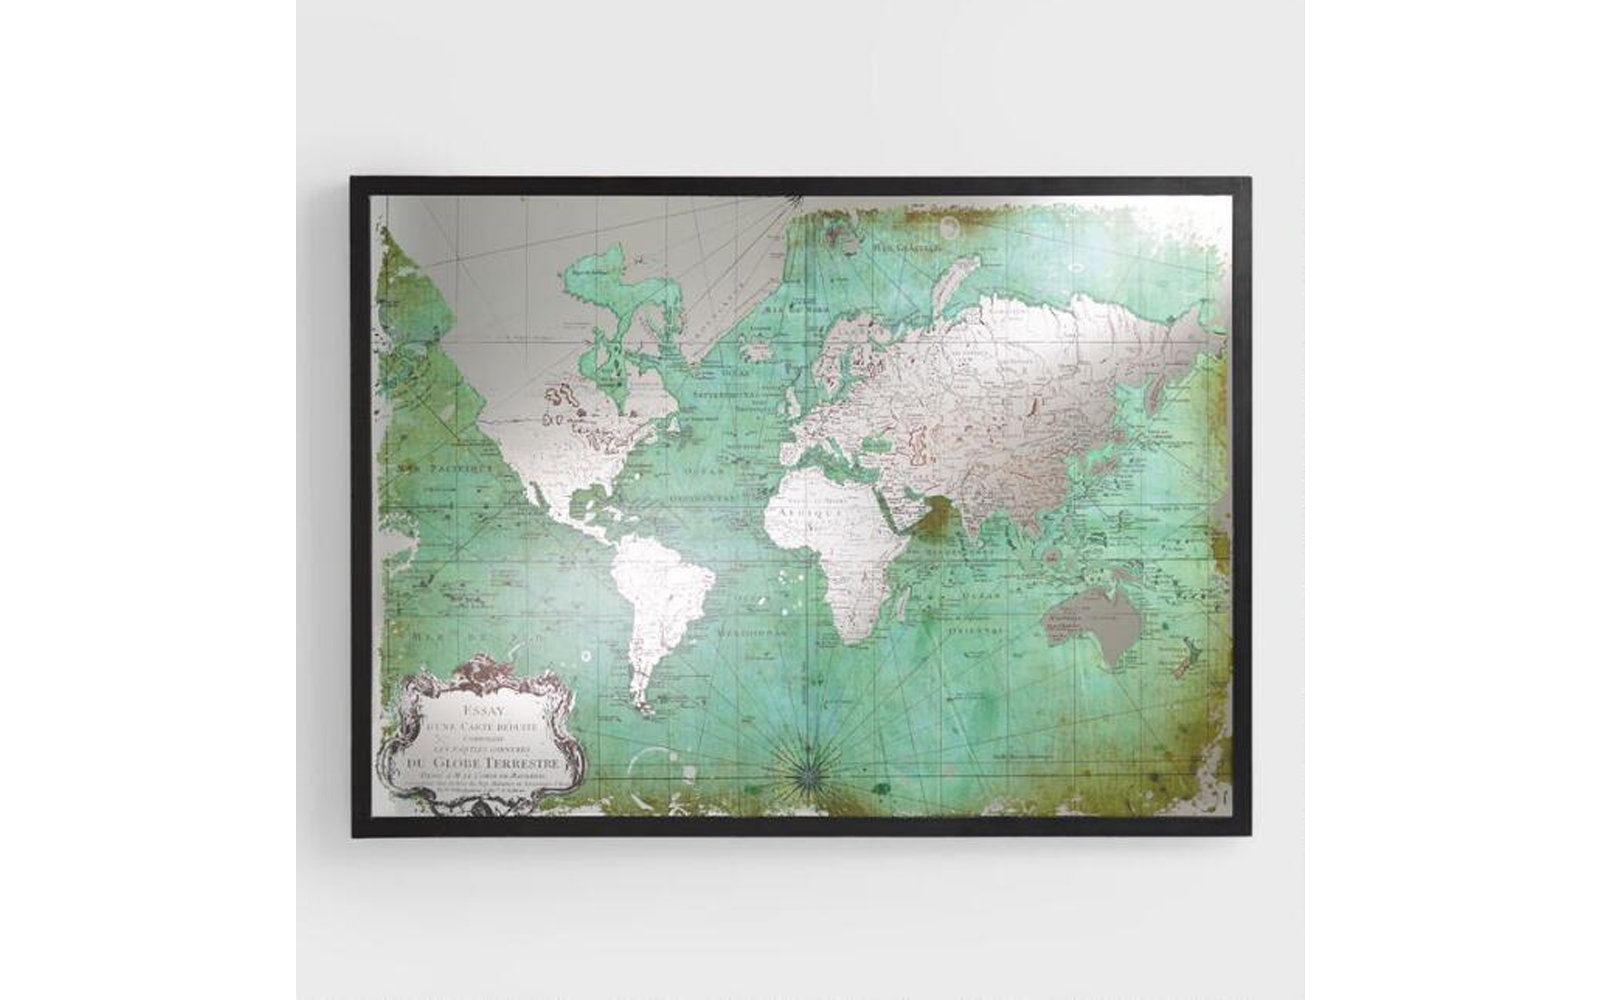 Nyc Subway Map Canvas Wall Art.Cool World Map Wall Art For Showing Off Your Wanderlust Travel